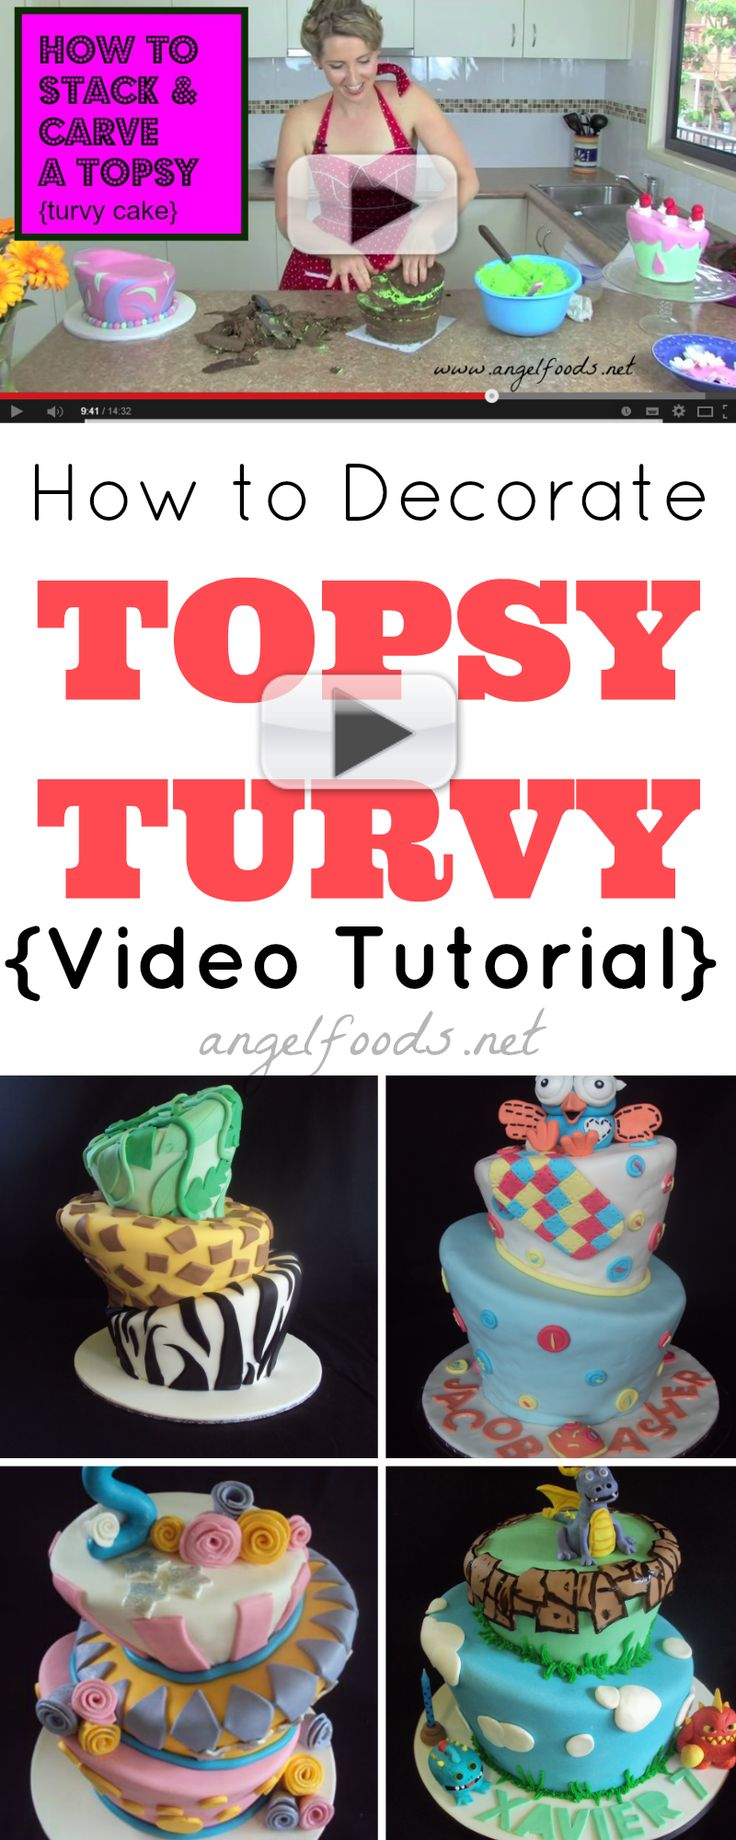 How to Decorate a topsy turvey cake video tutorial | When decorating a Topsy Turvy cake (sometimes spelt Topsy Turvey) or a Mad Hatter style cake, the stacking, layering & carving (cutting) can be hard to figure out.